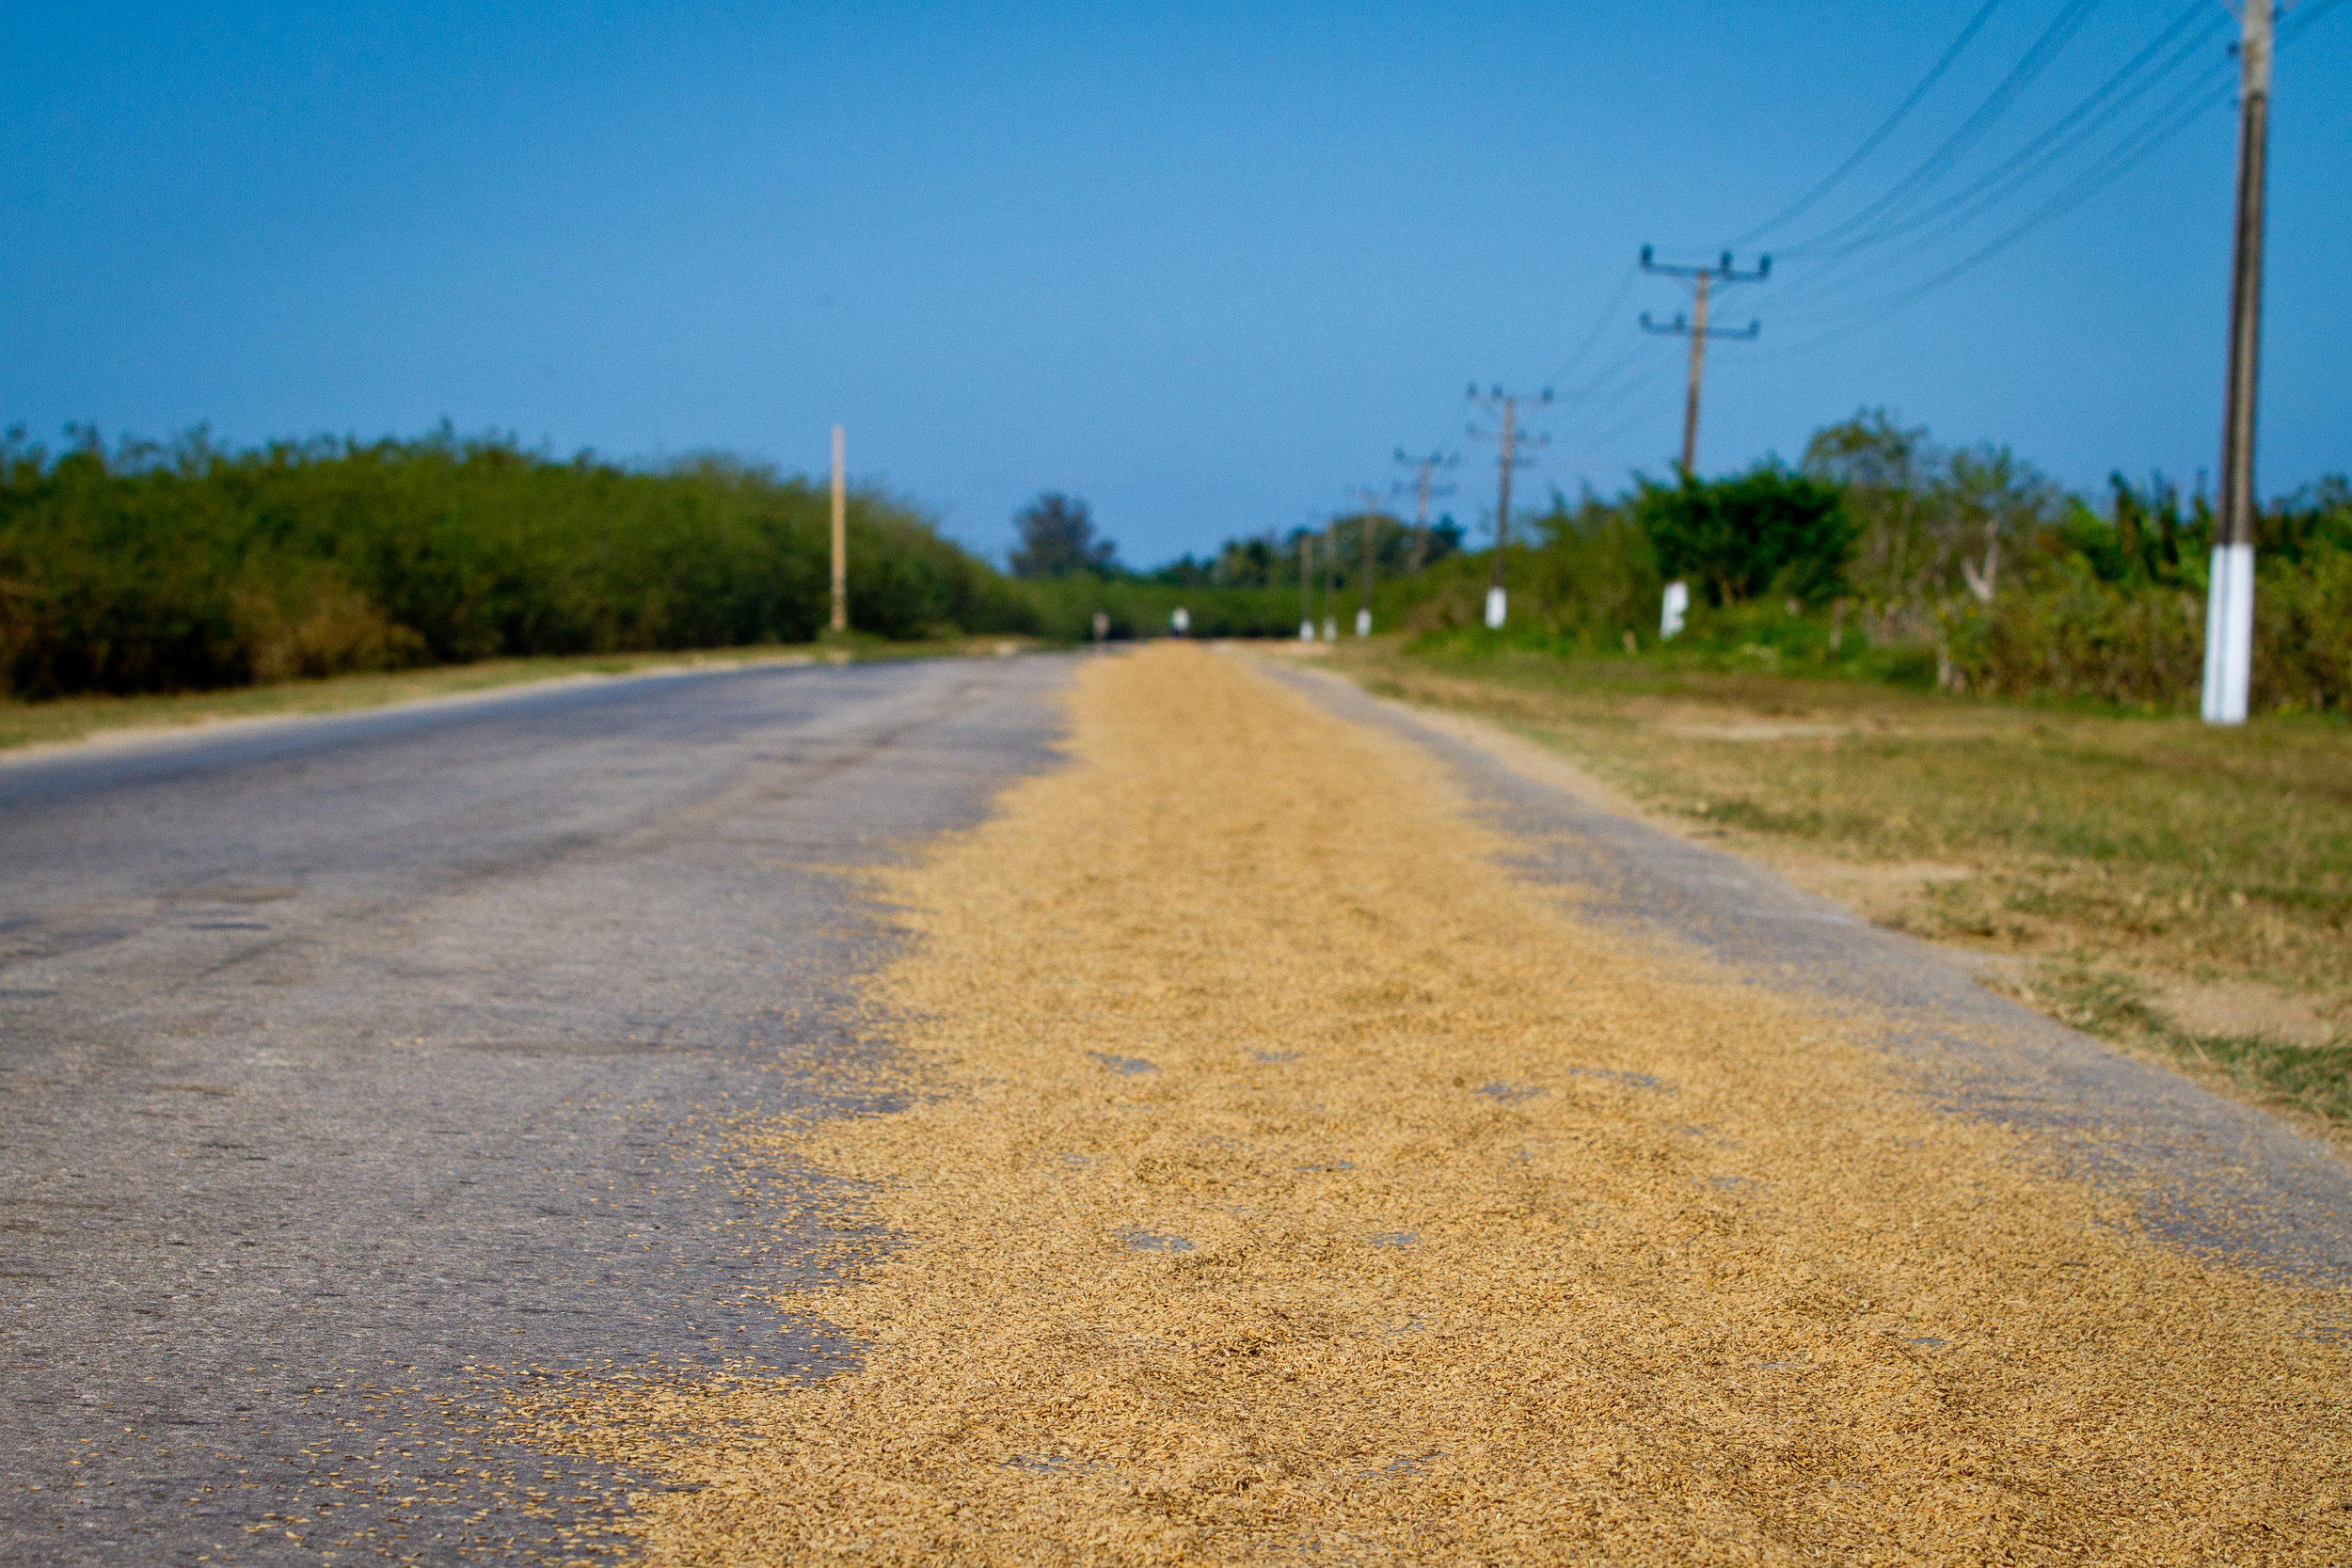 Rice drying on a country road, Cuba